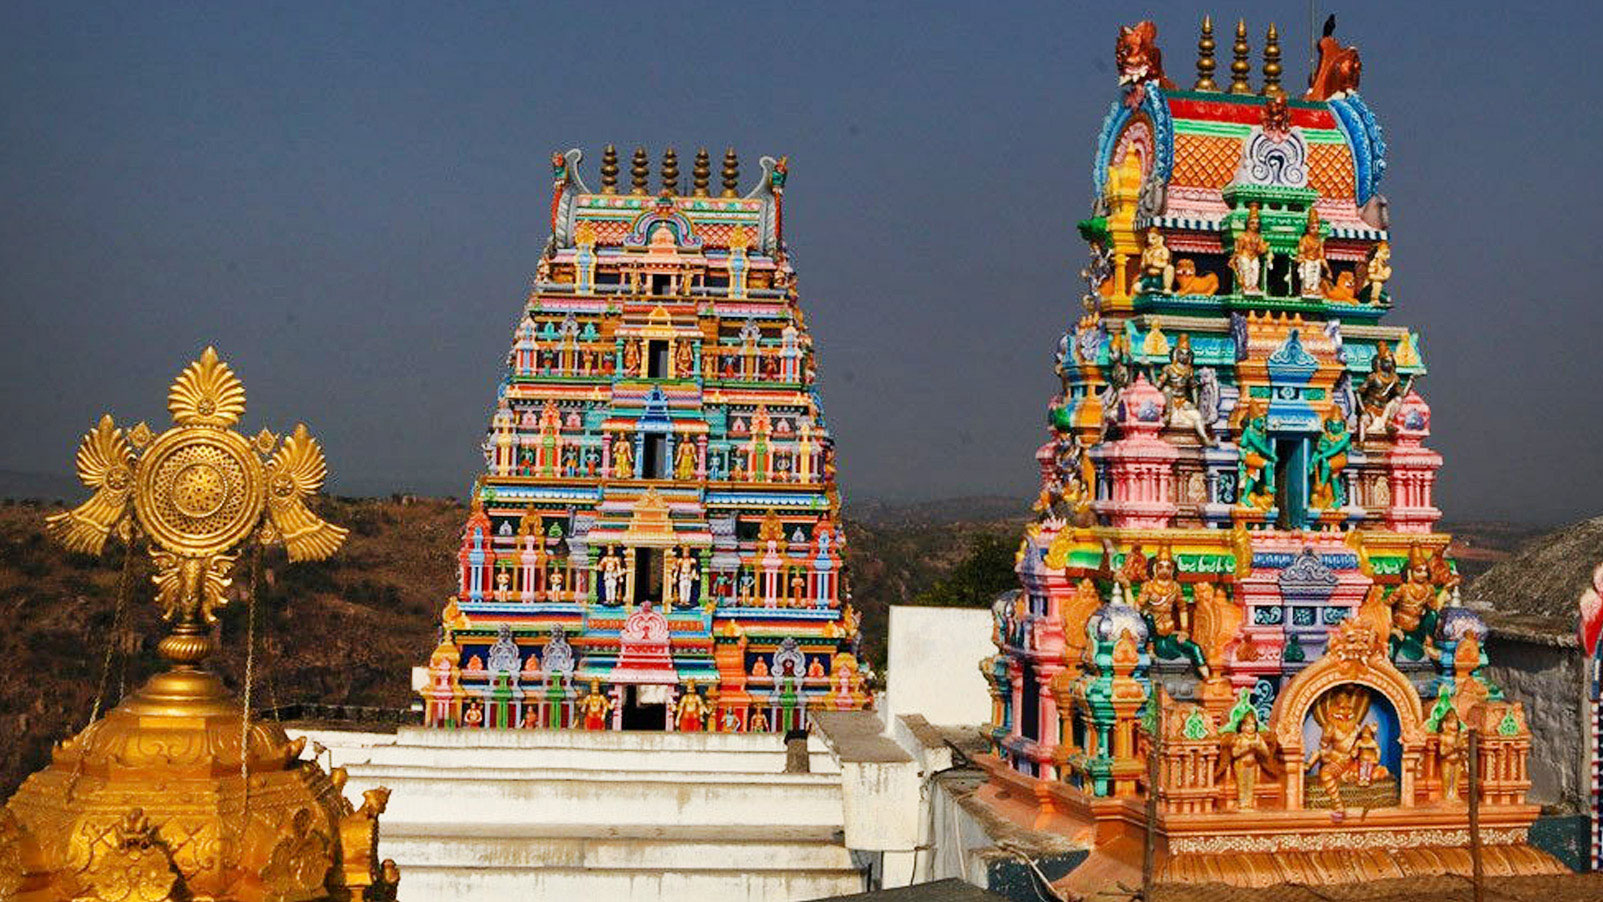 Sri Lakshminarasimha Swamy Temple (Photo: telanganatourism.gov.in)